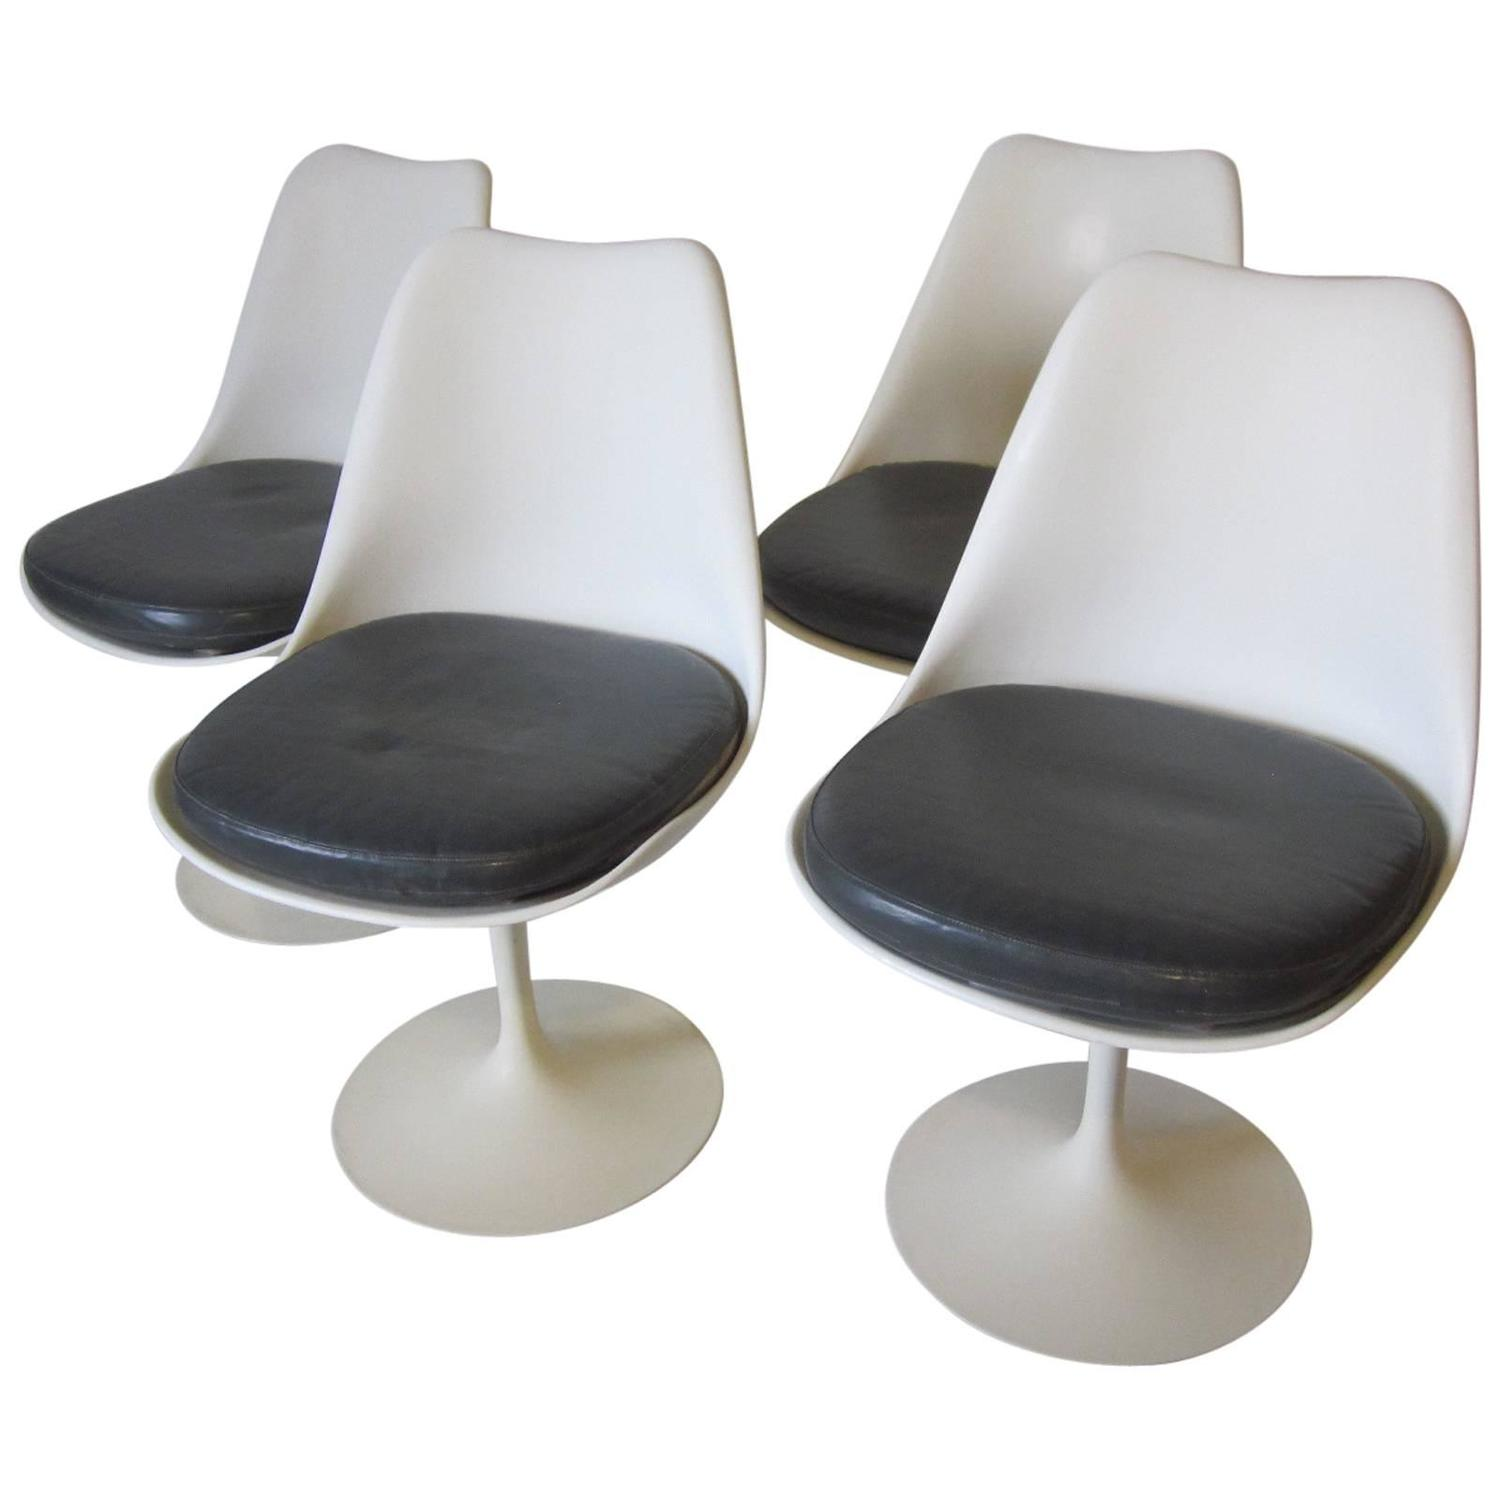 Eero saarinen tulip side chairs by knoll at 1stdibs for Eero saarinen tulip armchair